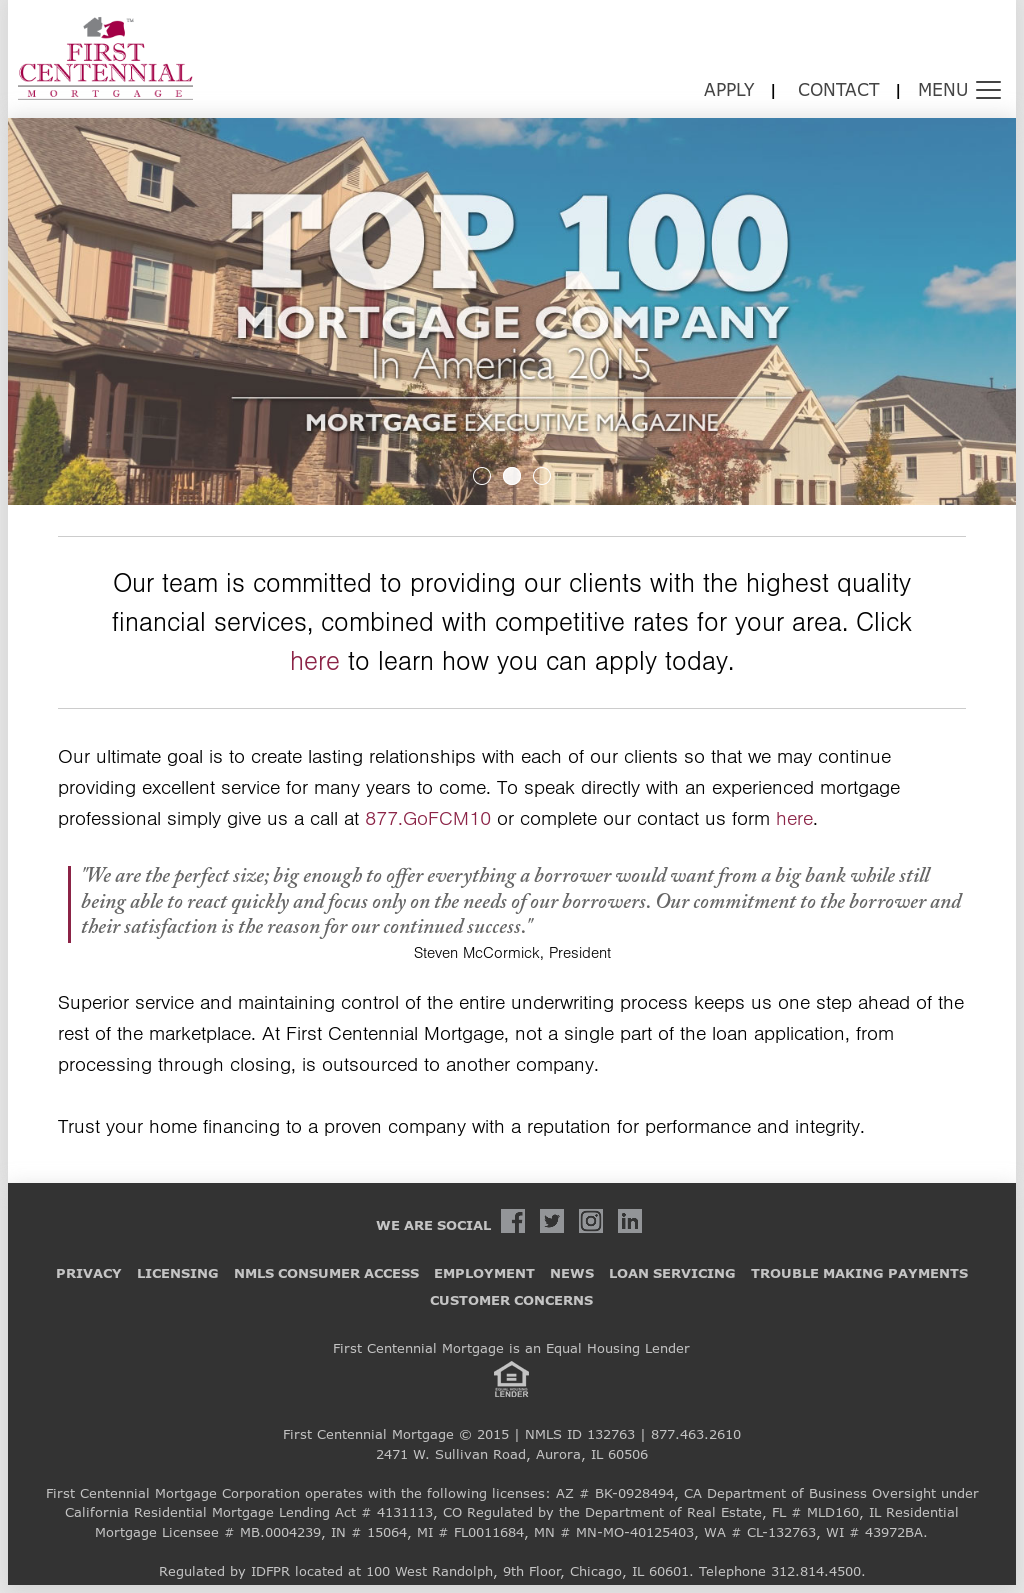 First Centennial Mortgage Competitors, Revenue and Employees